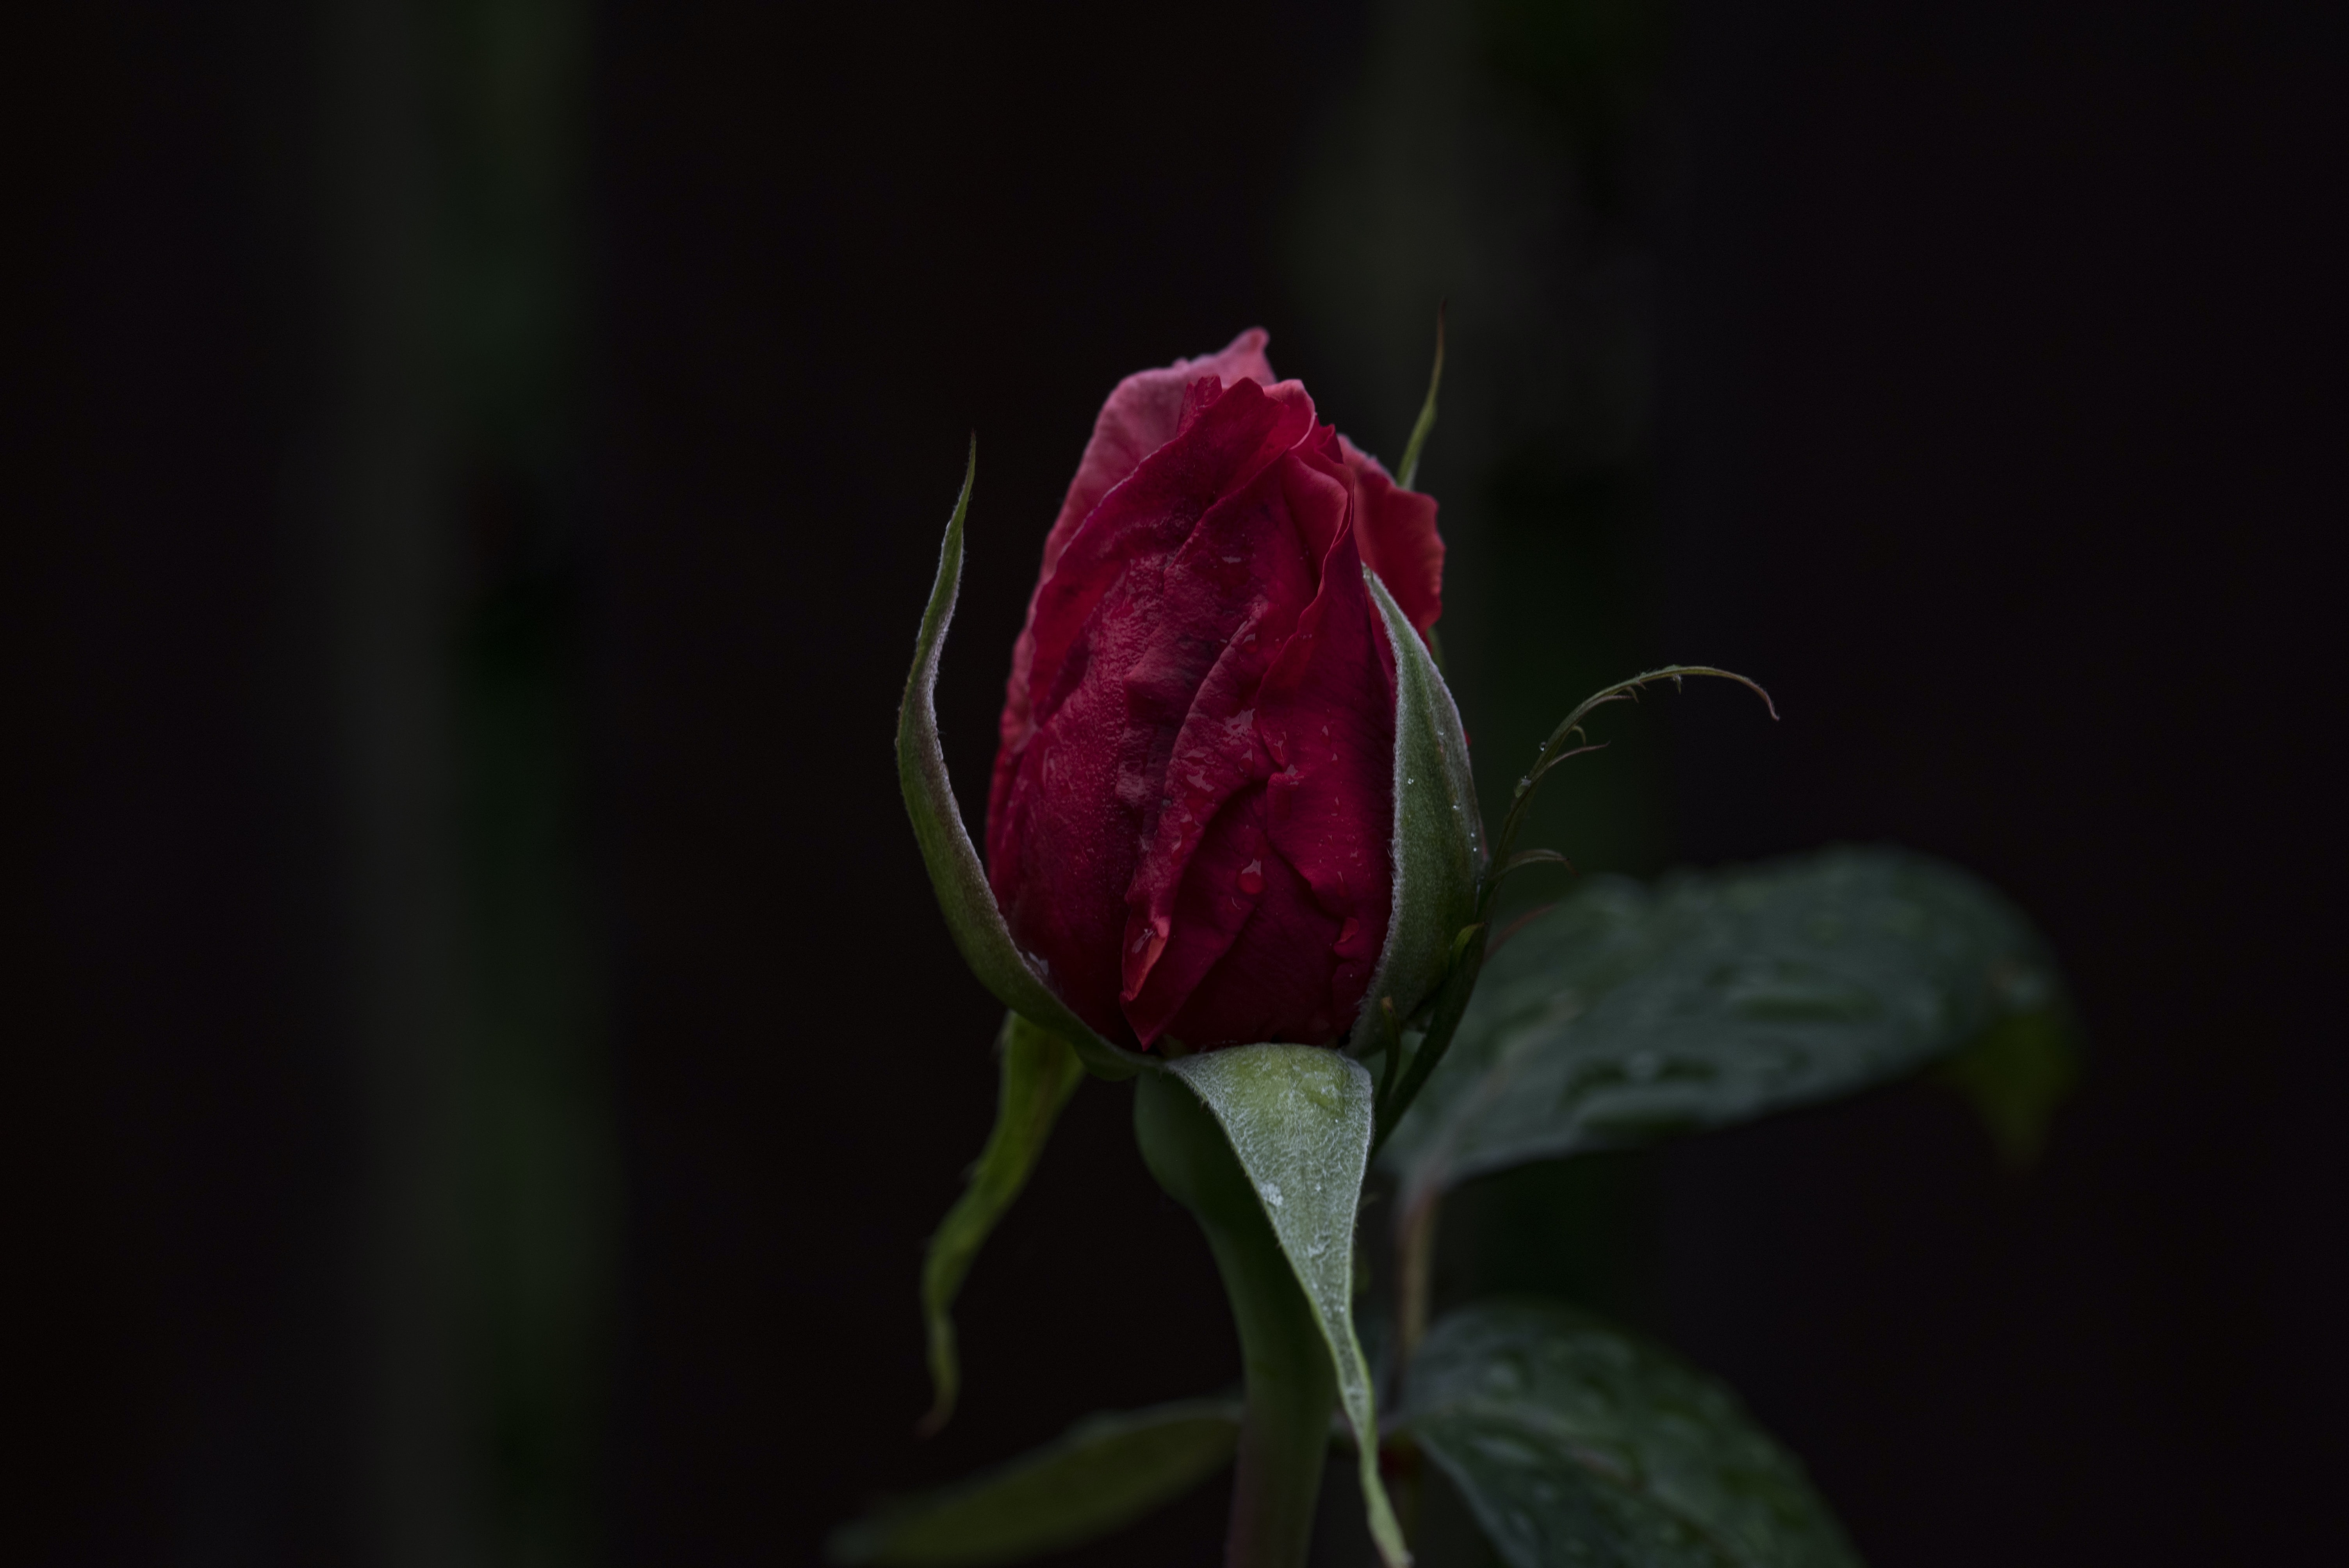 selective focus photography of red rose